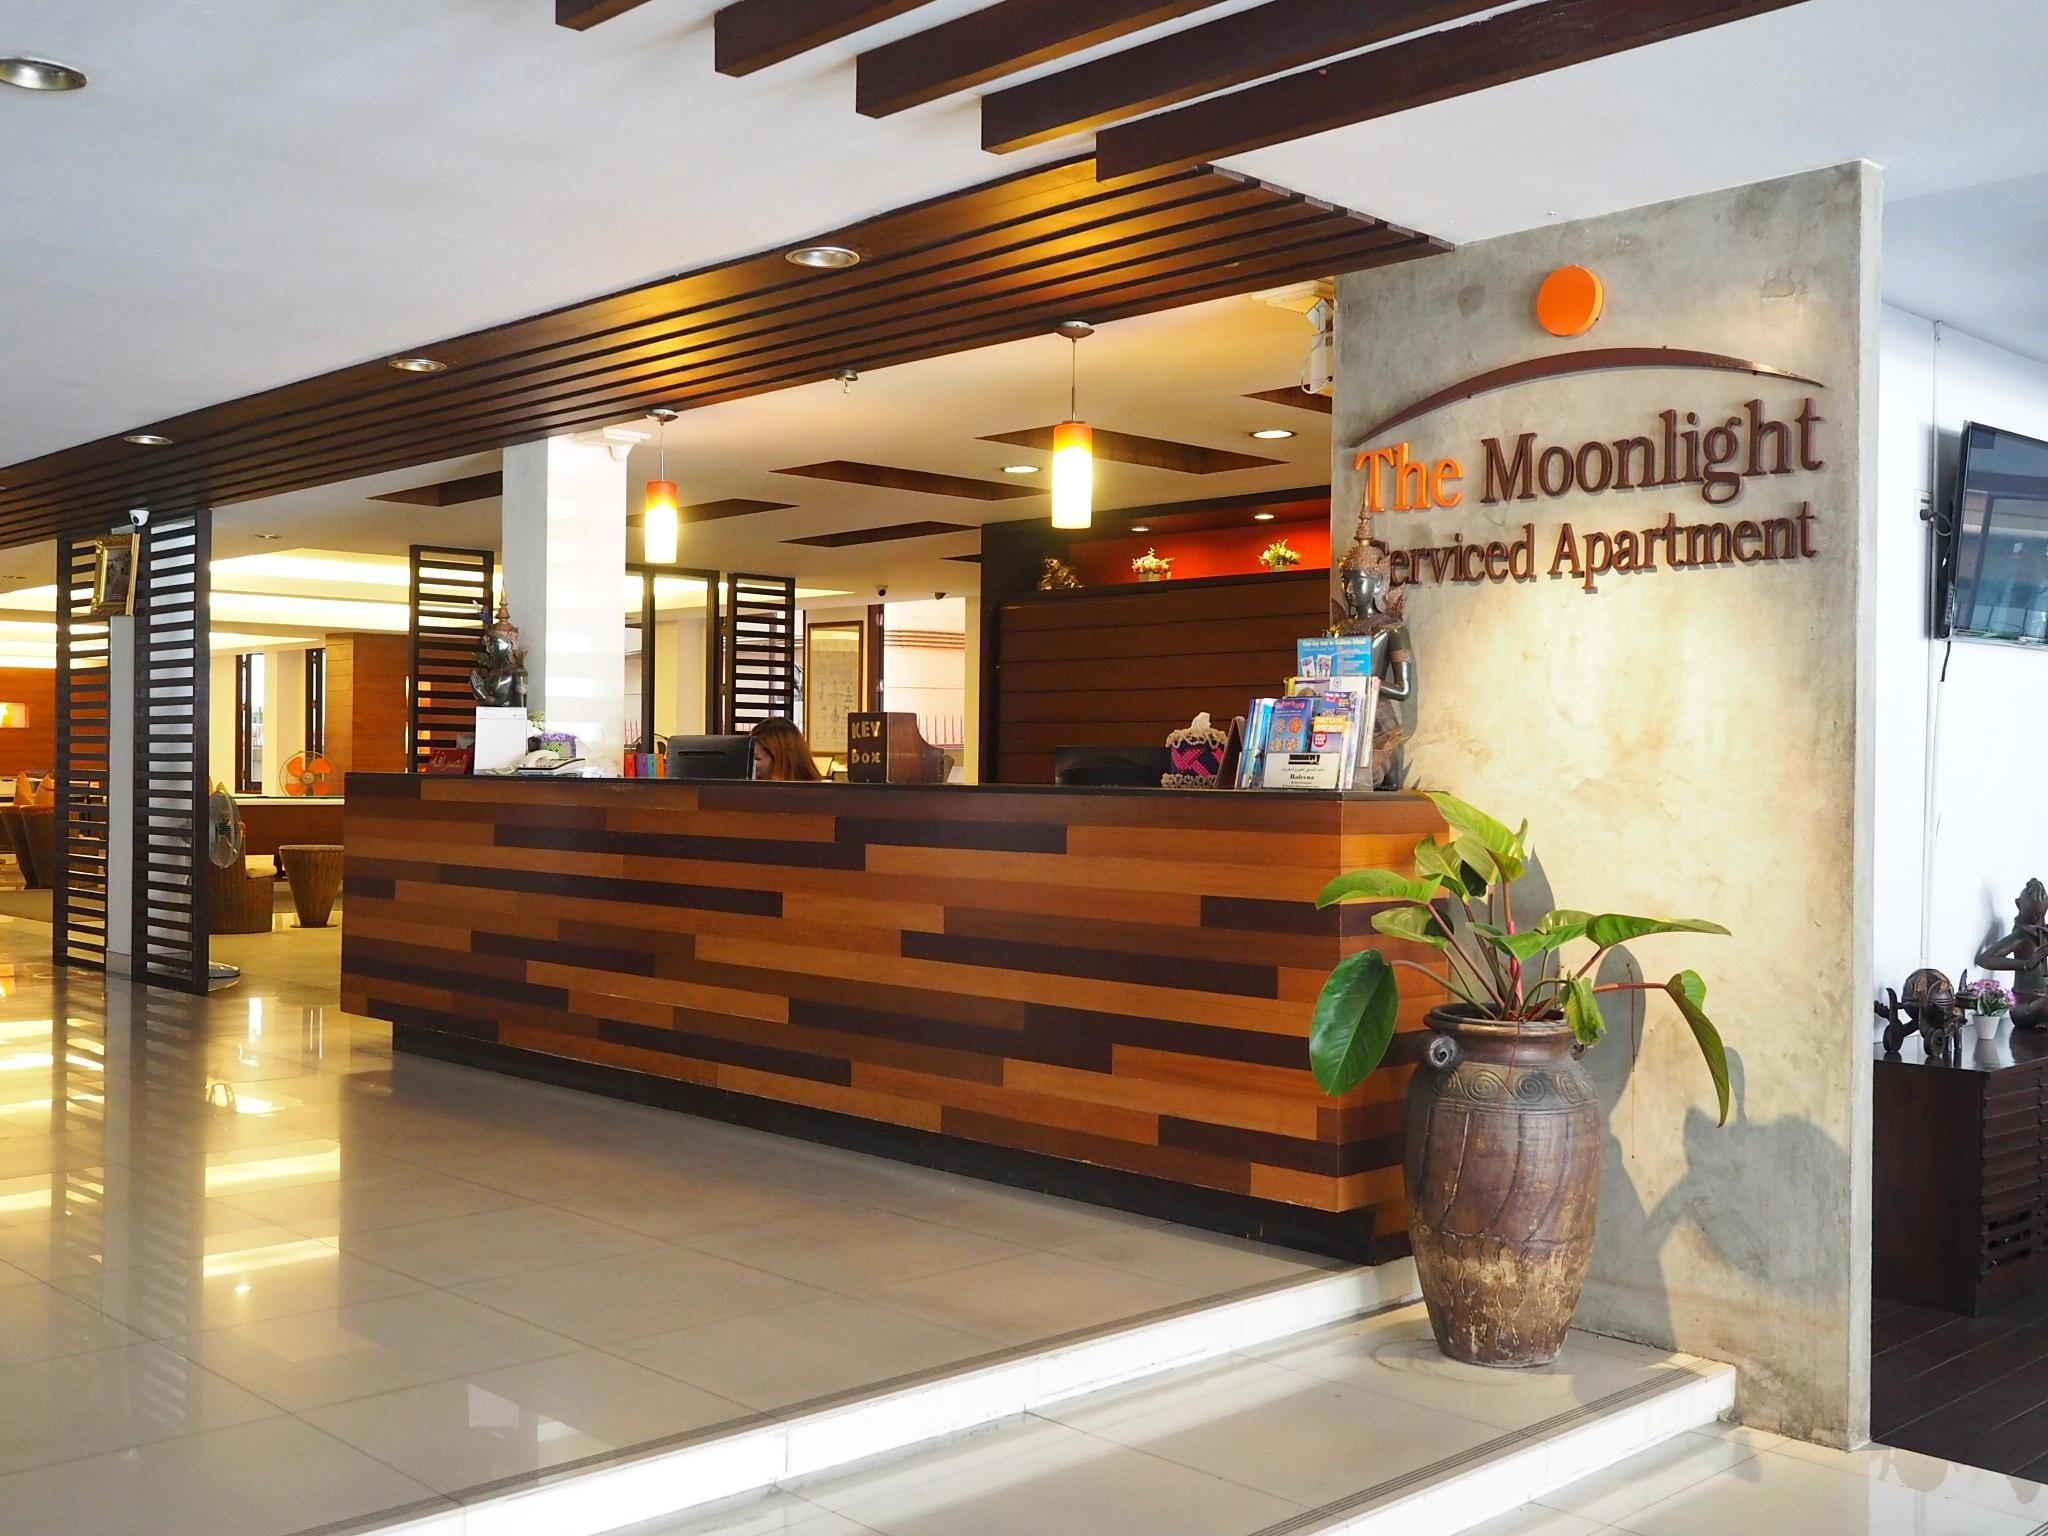 The Moonlight Serviced Apartment